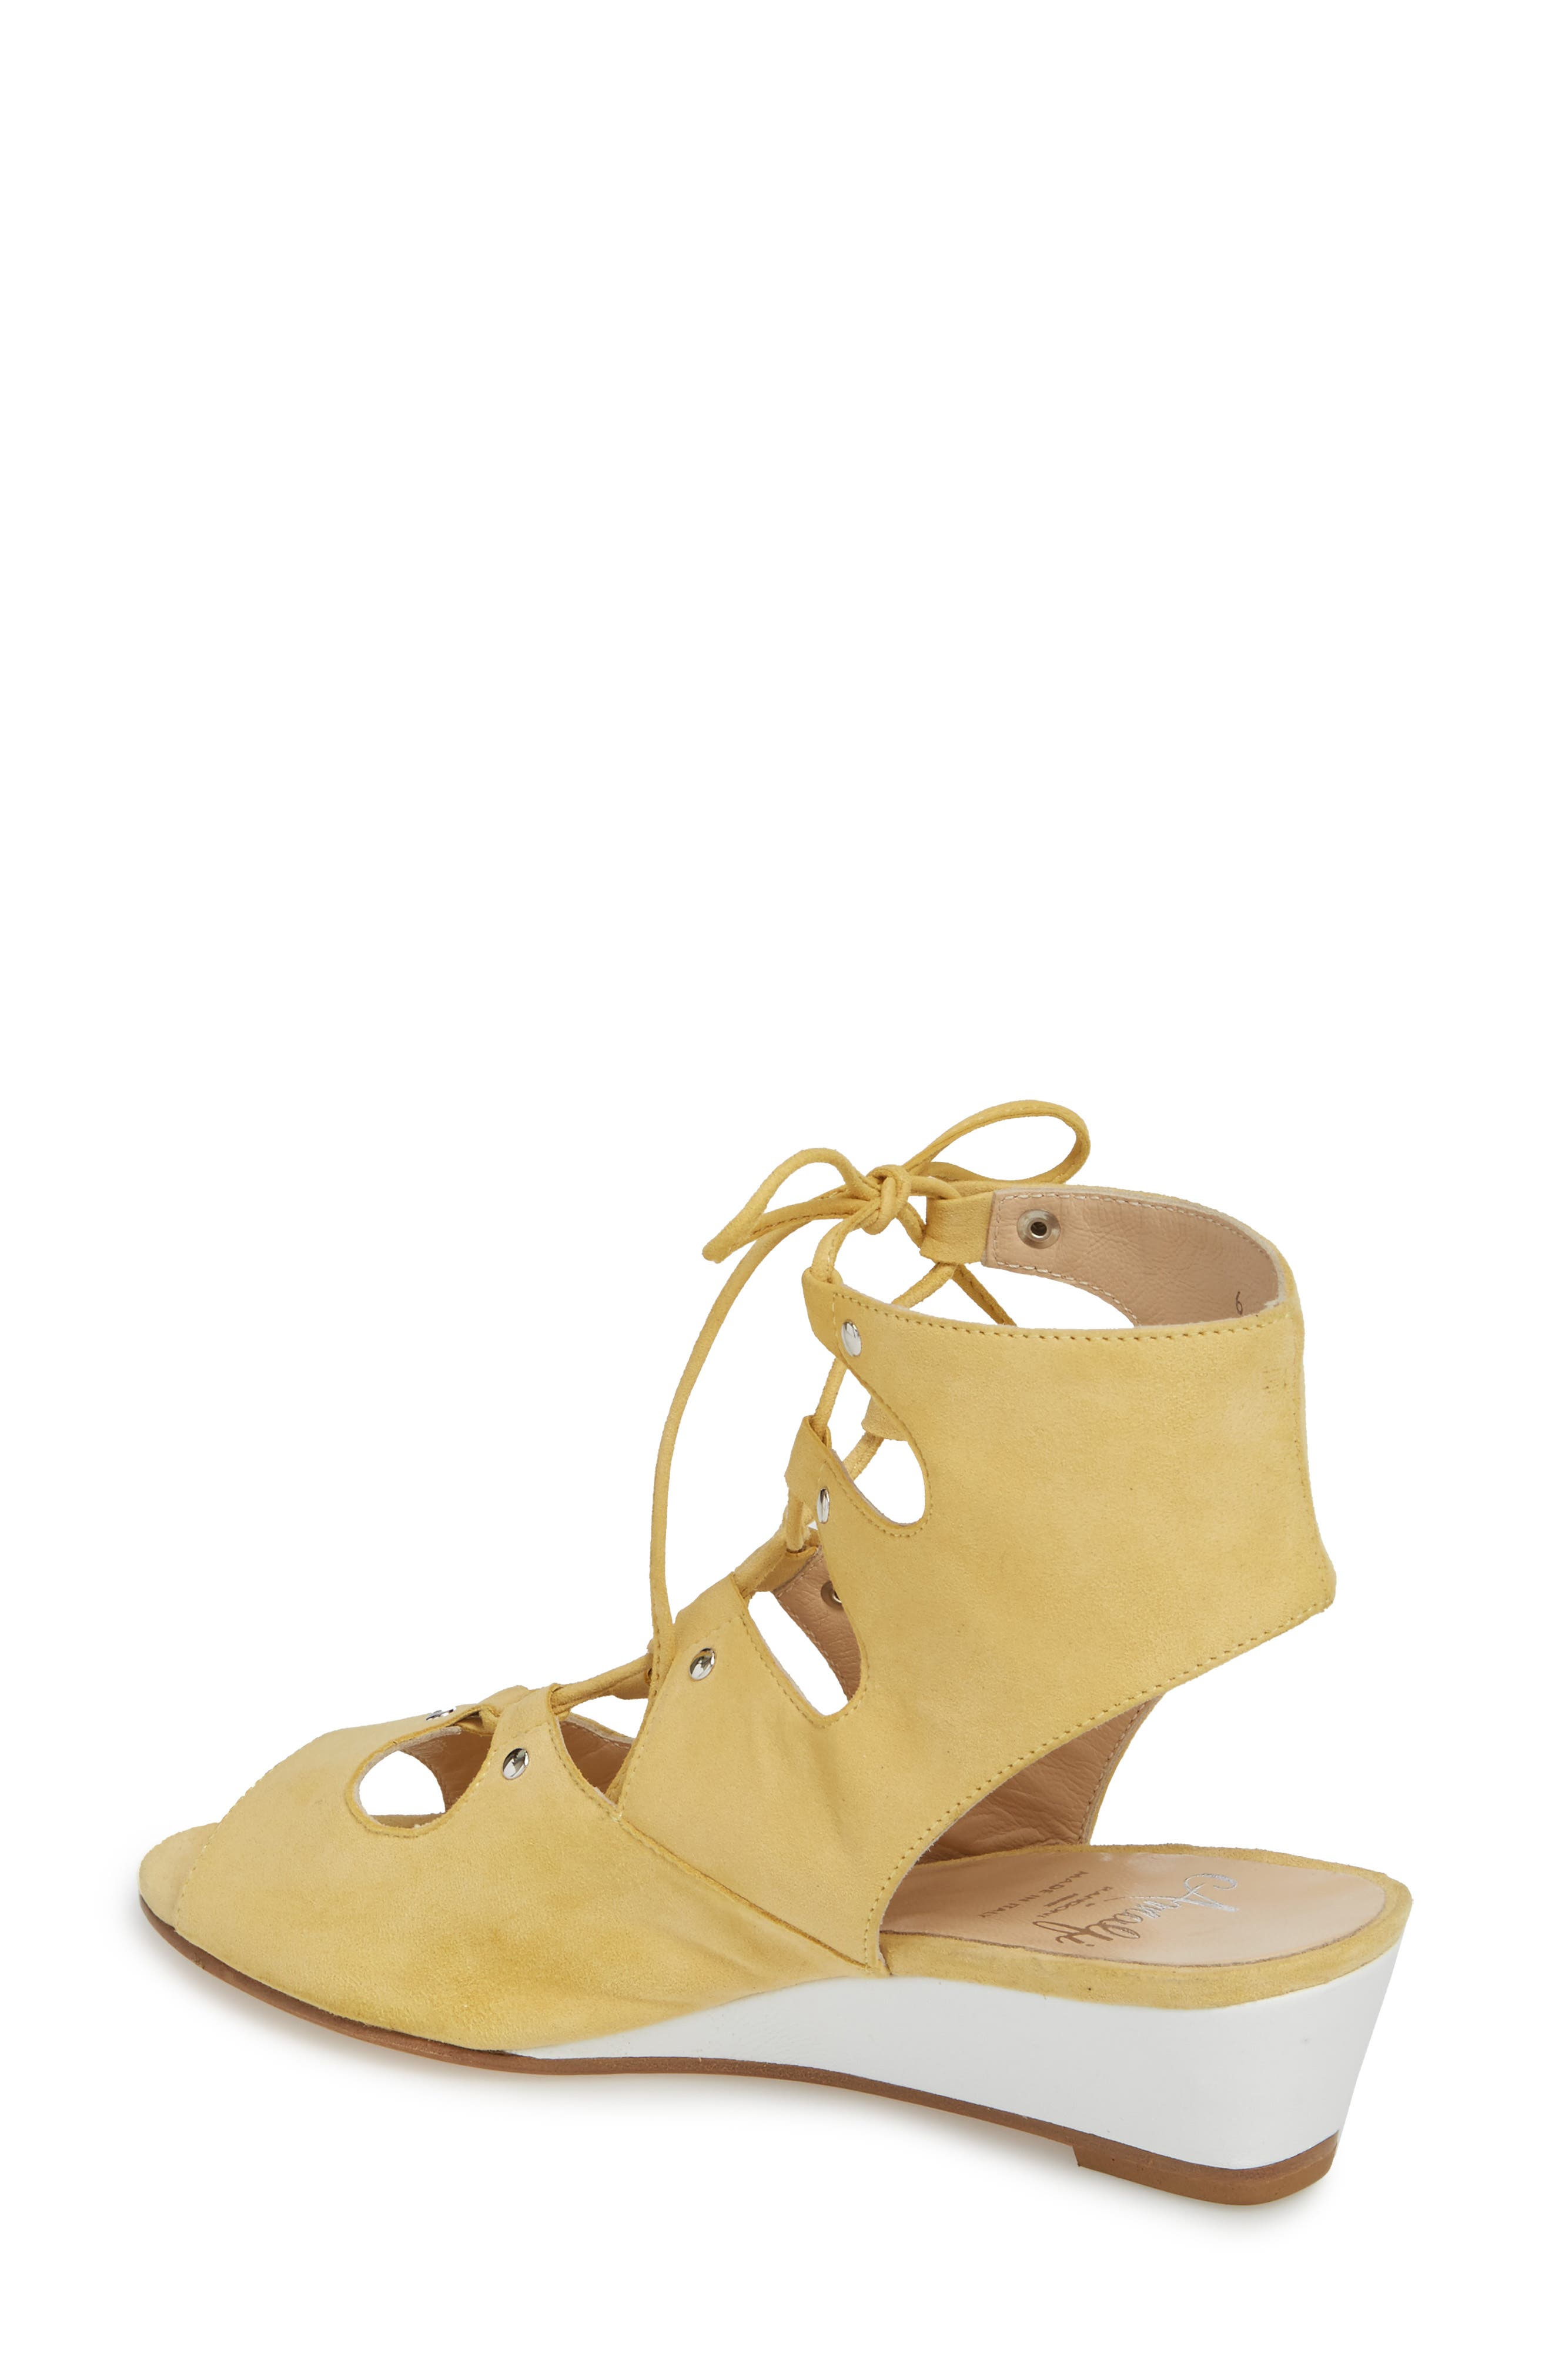 Morata Ghillie Cage Sandal,                             Alternate thumbnail 2, color,                             Mango/ Beige Suede